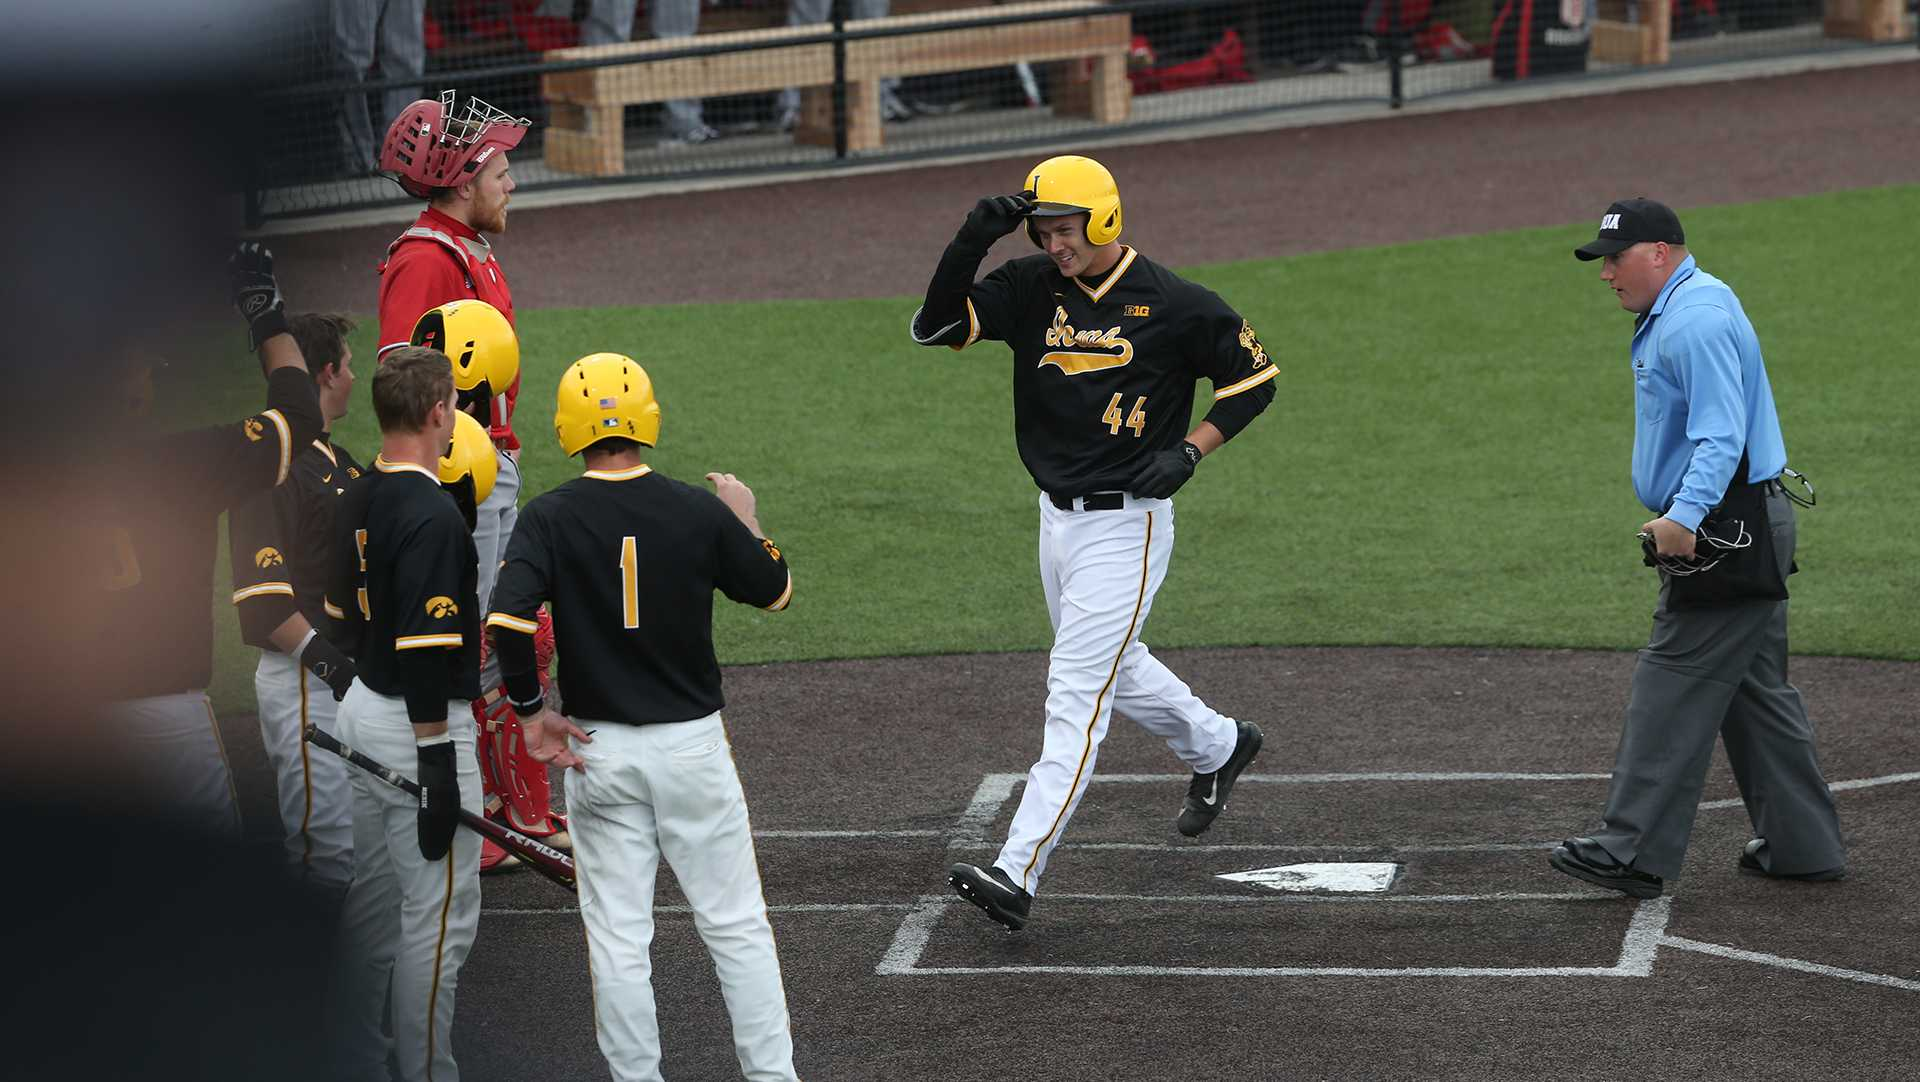 Iowa outfielder Robert Neustrom celebrates with teammates after his grand slam during the game between the Bradley Braves and the Iowa Hawkeyes in Iowa City at Duane Banks Field on Wednesday, March 22, 2017. The Hawkeyes bats came alive to hit two grand slams and won 12-1. (The Daily Iowan/ Alex Kroeze)